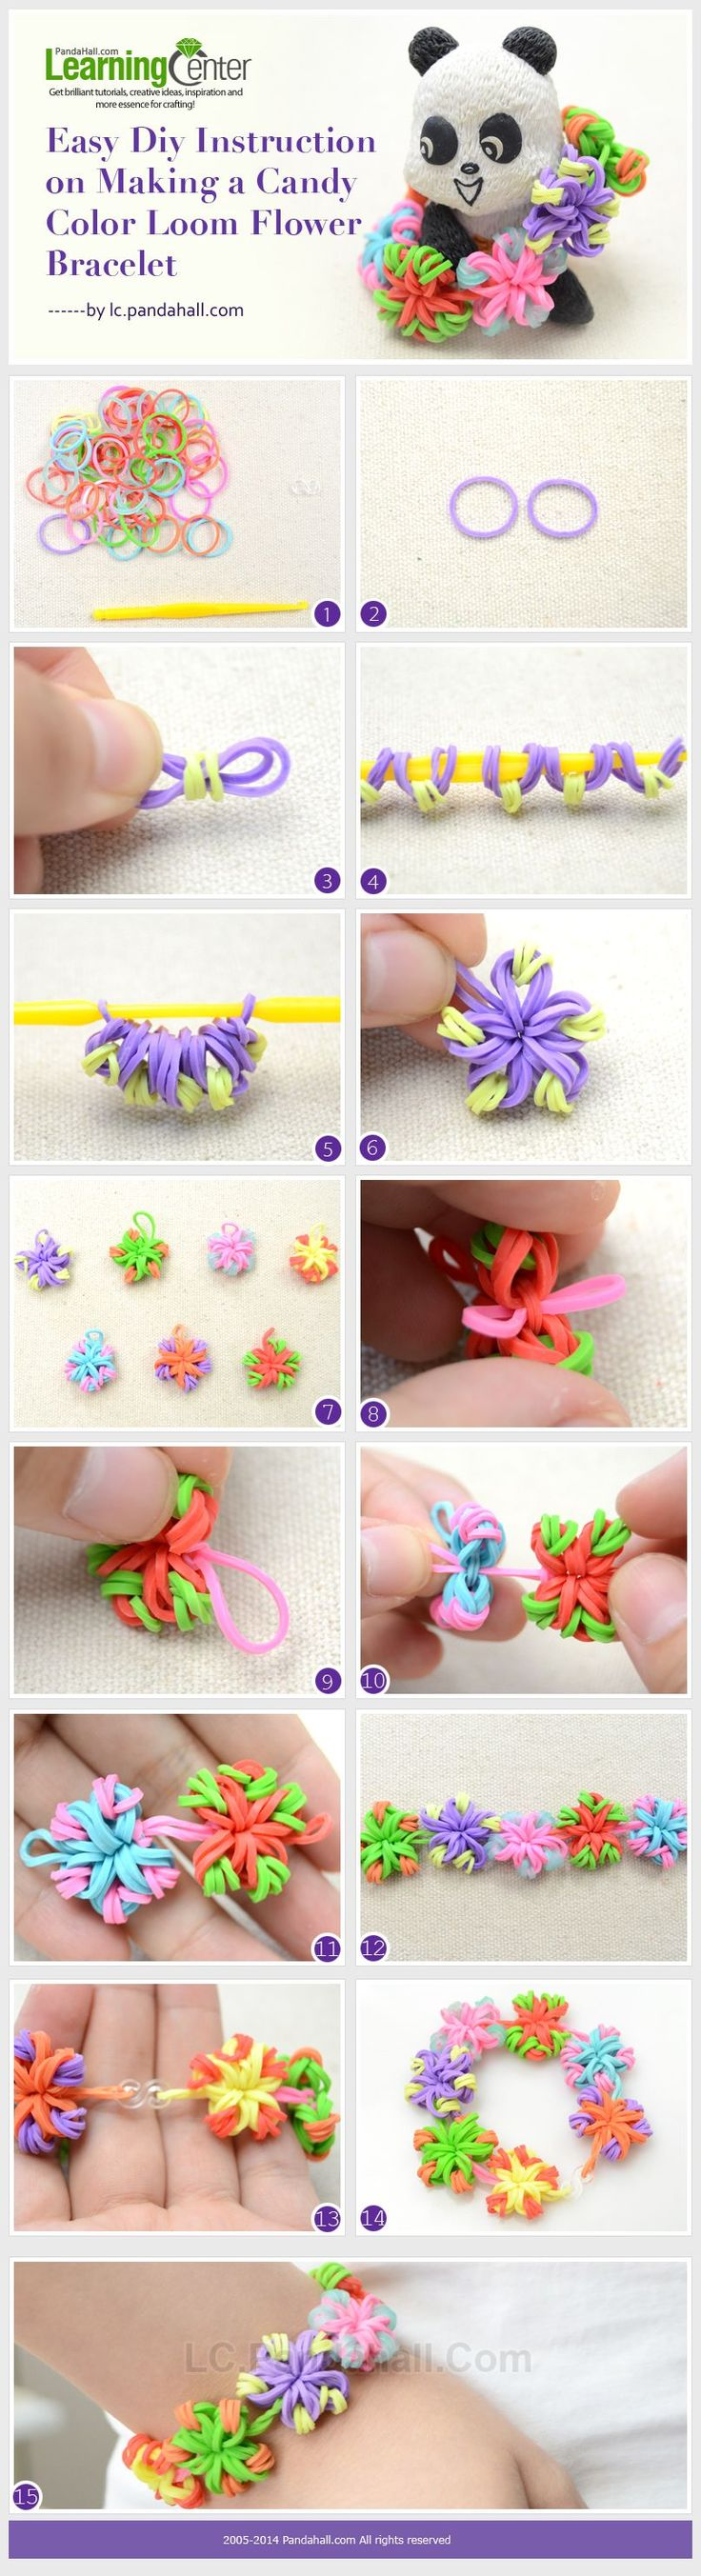 The 30 Most Important Rainbow Loom Accomplishments Of 2013